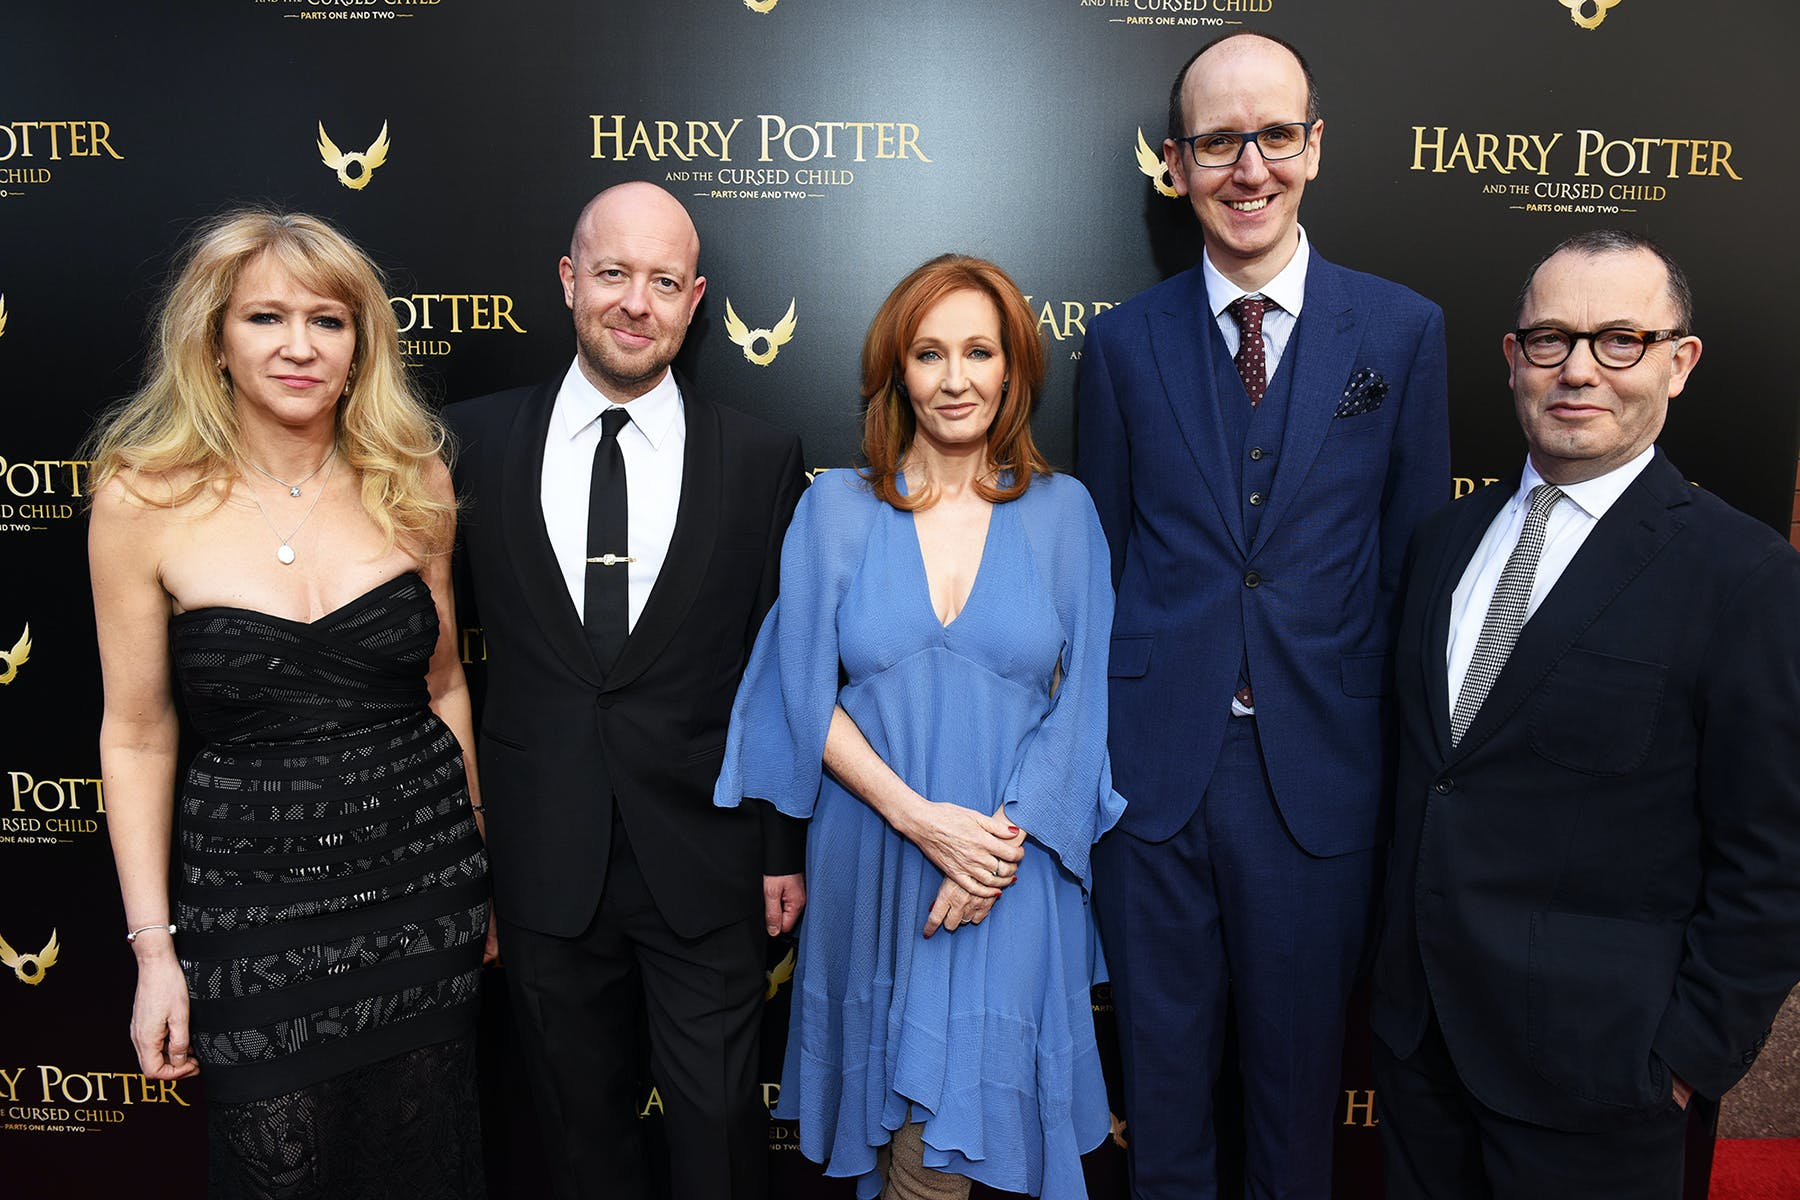 Harry Potter and the Cursed Child' Opens on Broadway